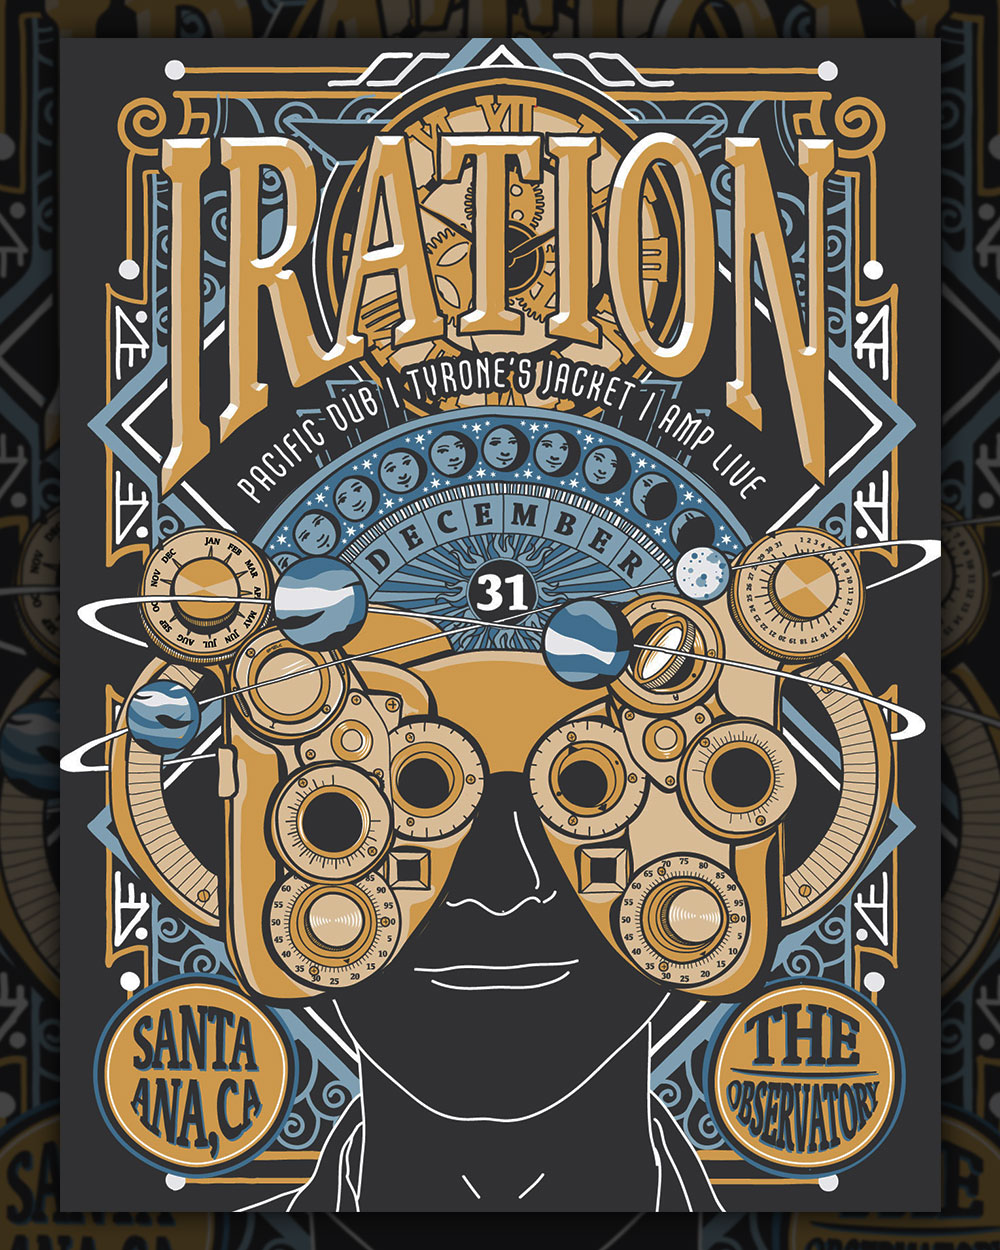 IRATION_NYE-2018_POSTER_INSTAGRAM_PREVIEW.jpg